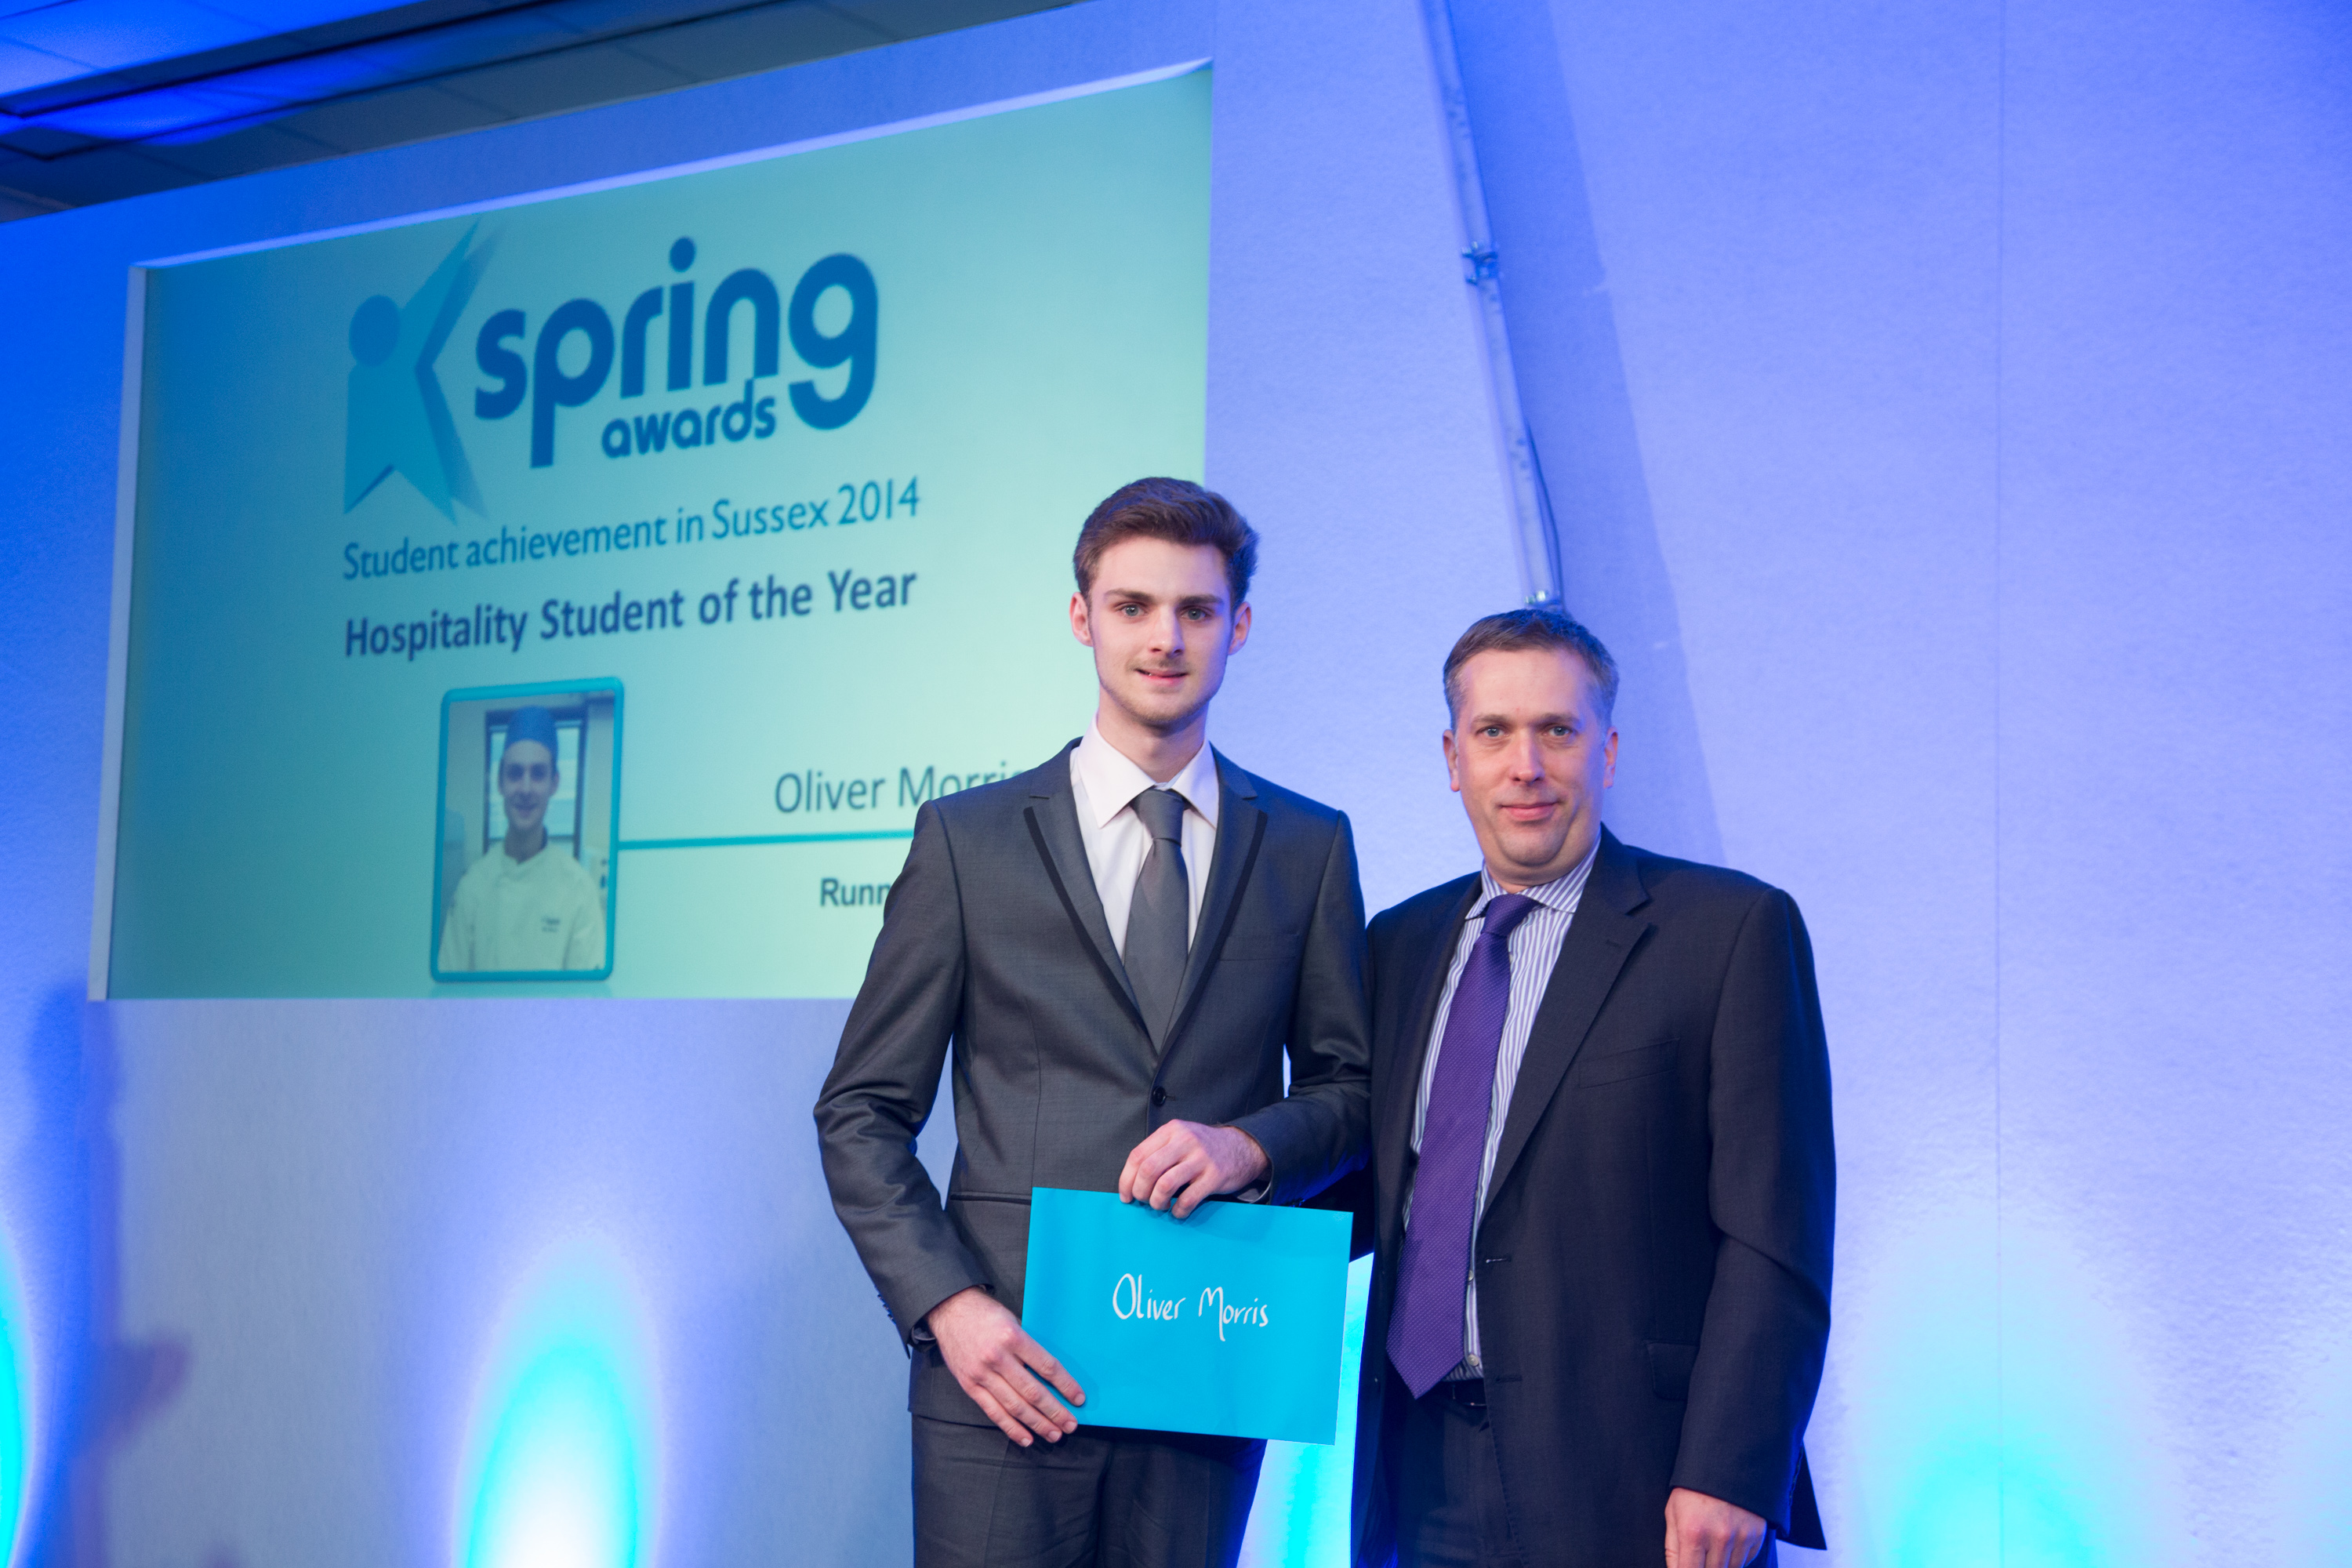 FE-Sussex-2014-Awards-6643.jpg